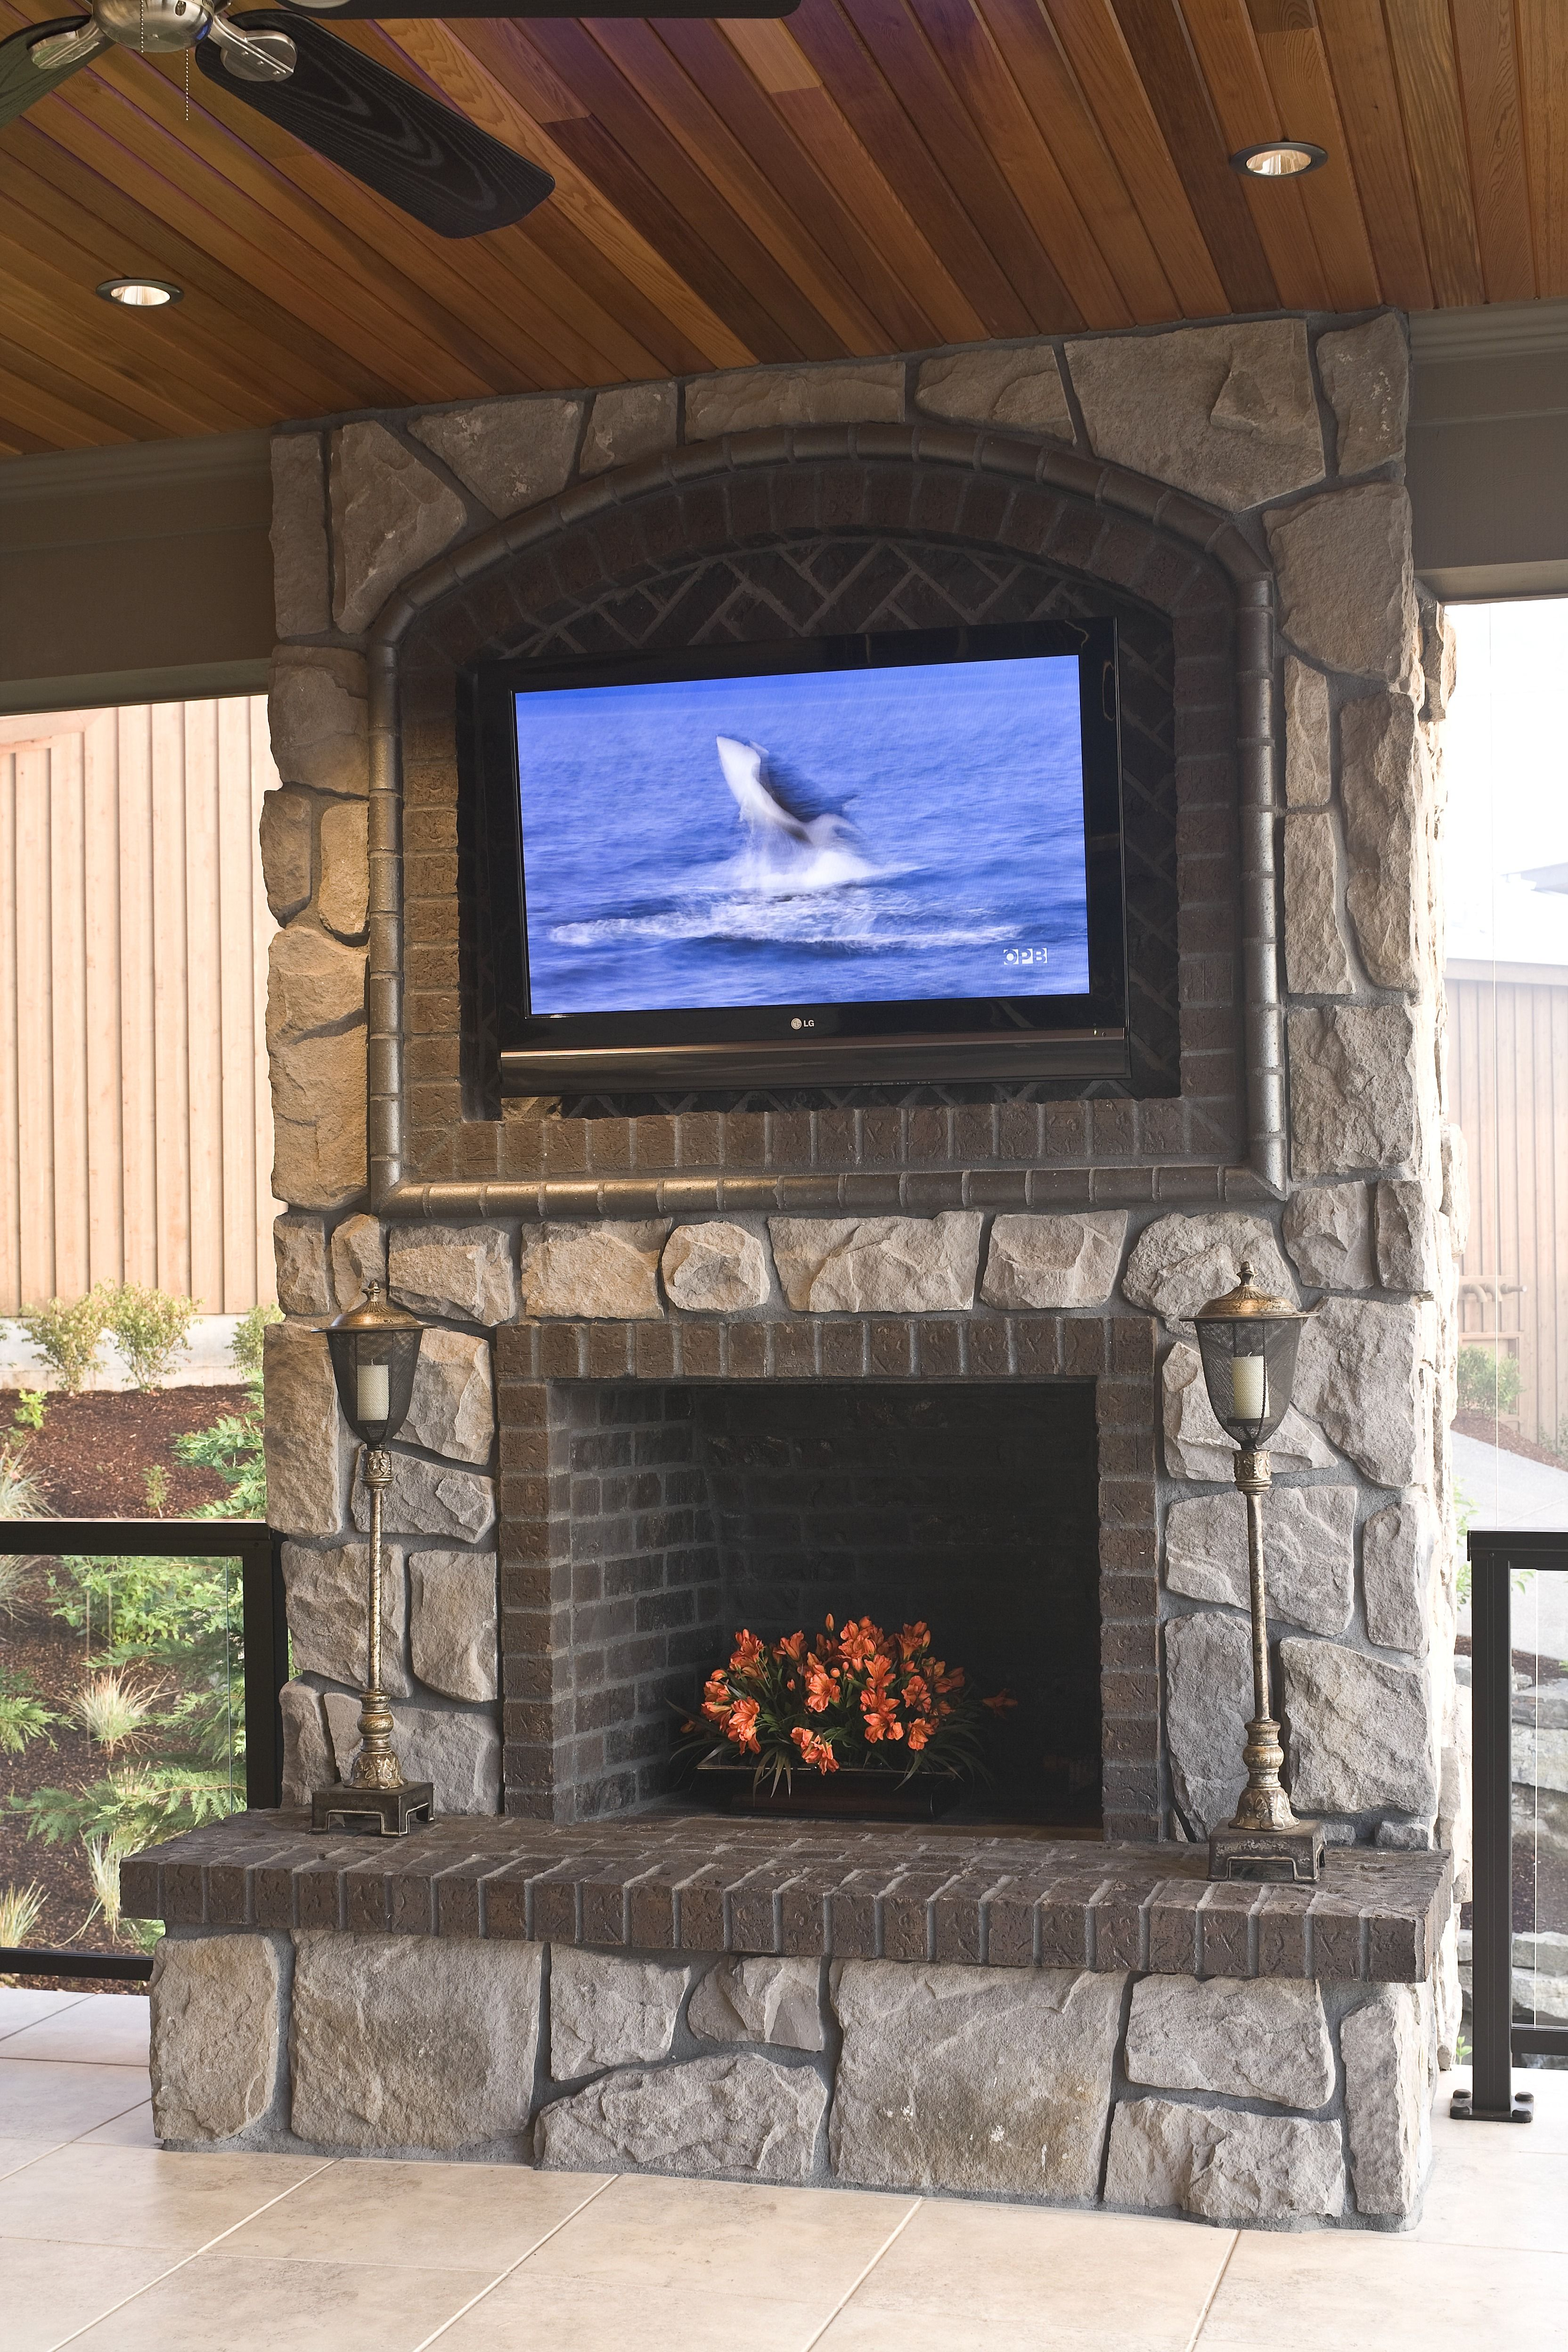 The Large Rock Chimney Is Stunning Click To See How Much It Costs Build An Outdoor Fireplace